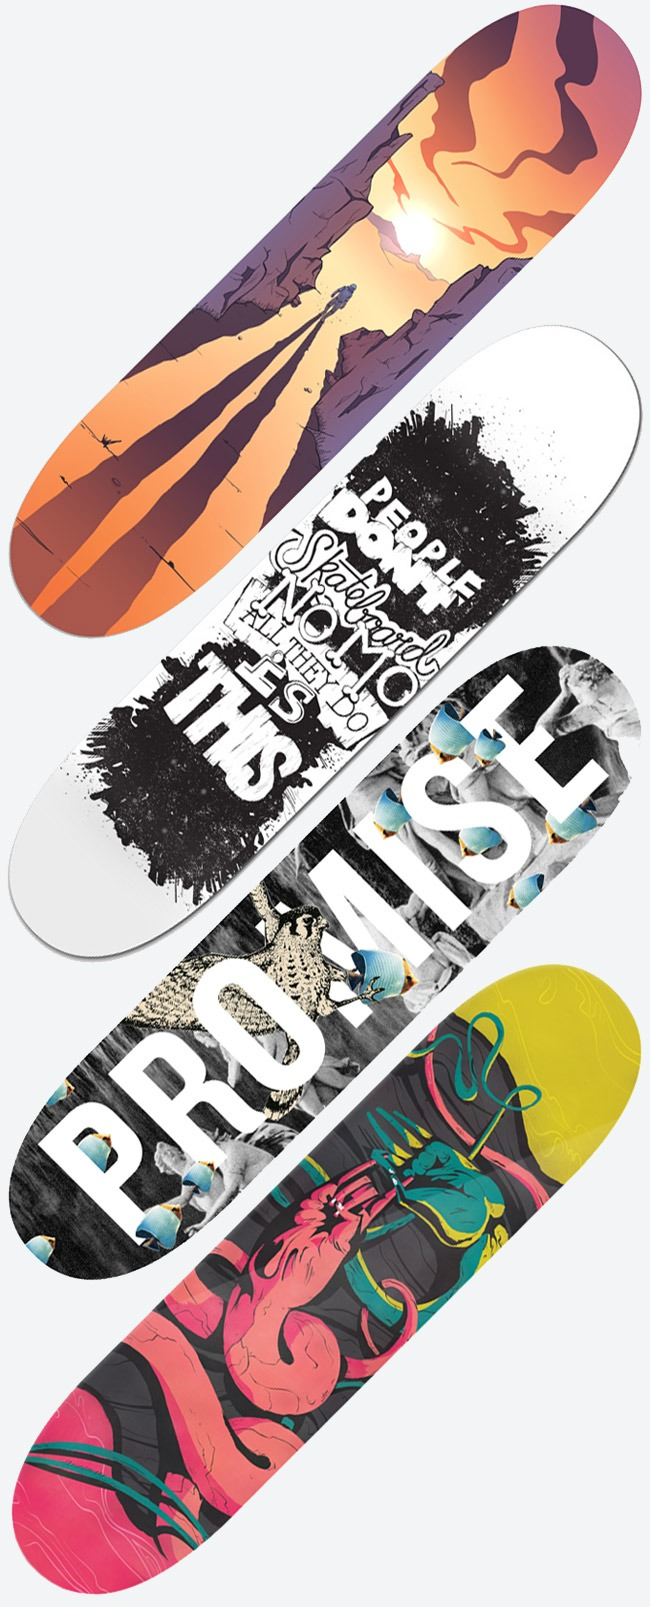 Skateboards designed for charity. From top to bottom: The Frontiersman, by Tyson Damman THIS, by Karla Mickens Promise, by Able Parris Effin' Metal, by Jay Quercia